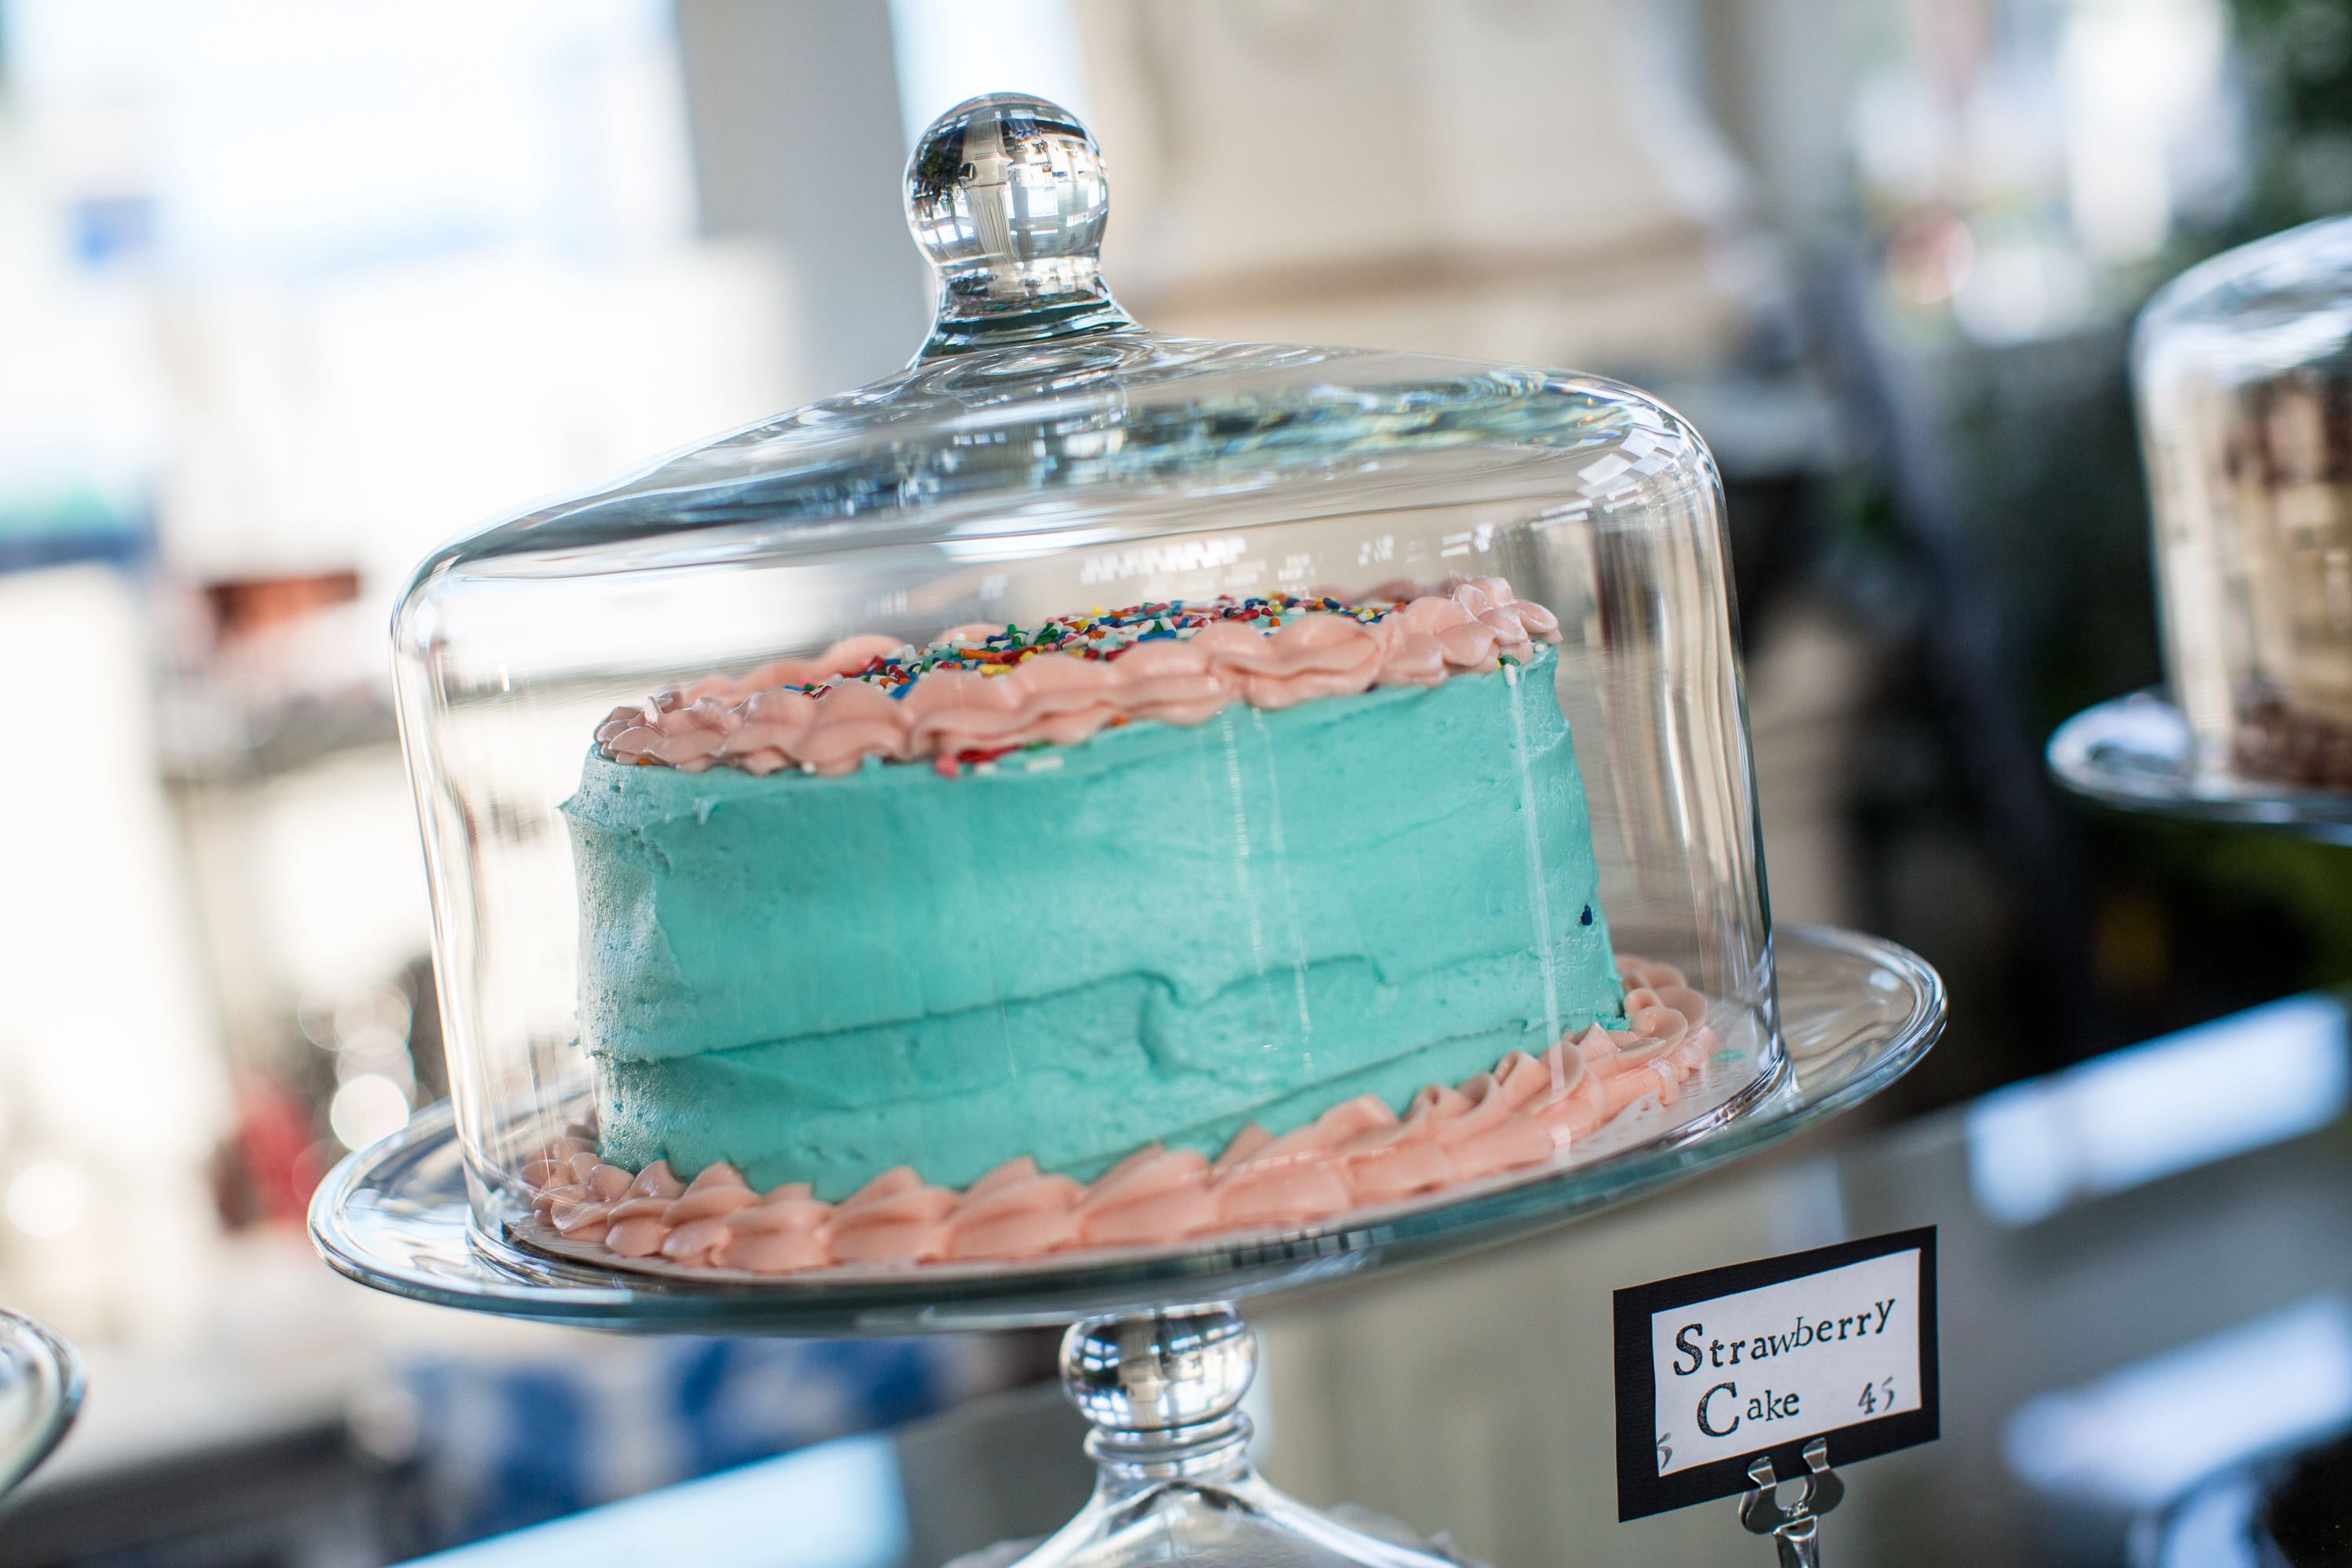 A cake at The Sweet Spot.